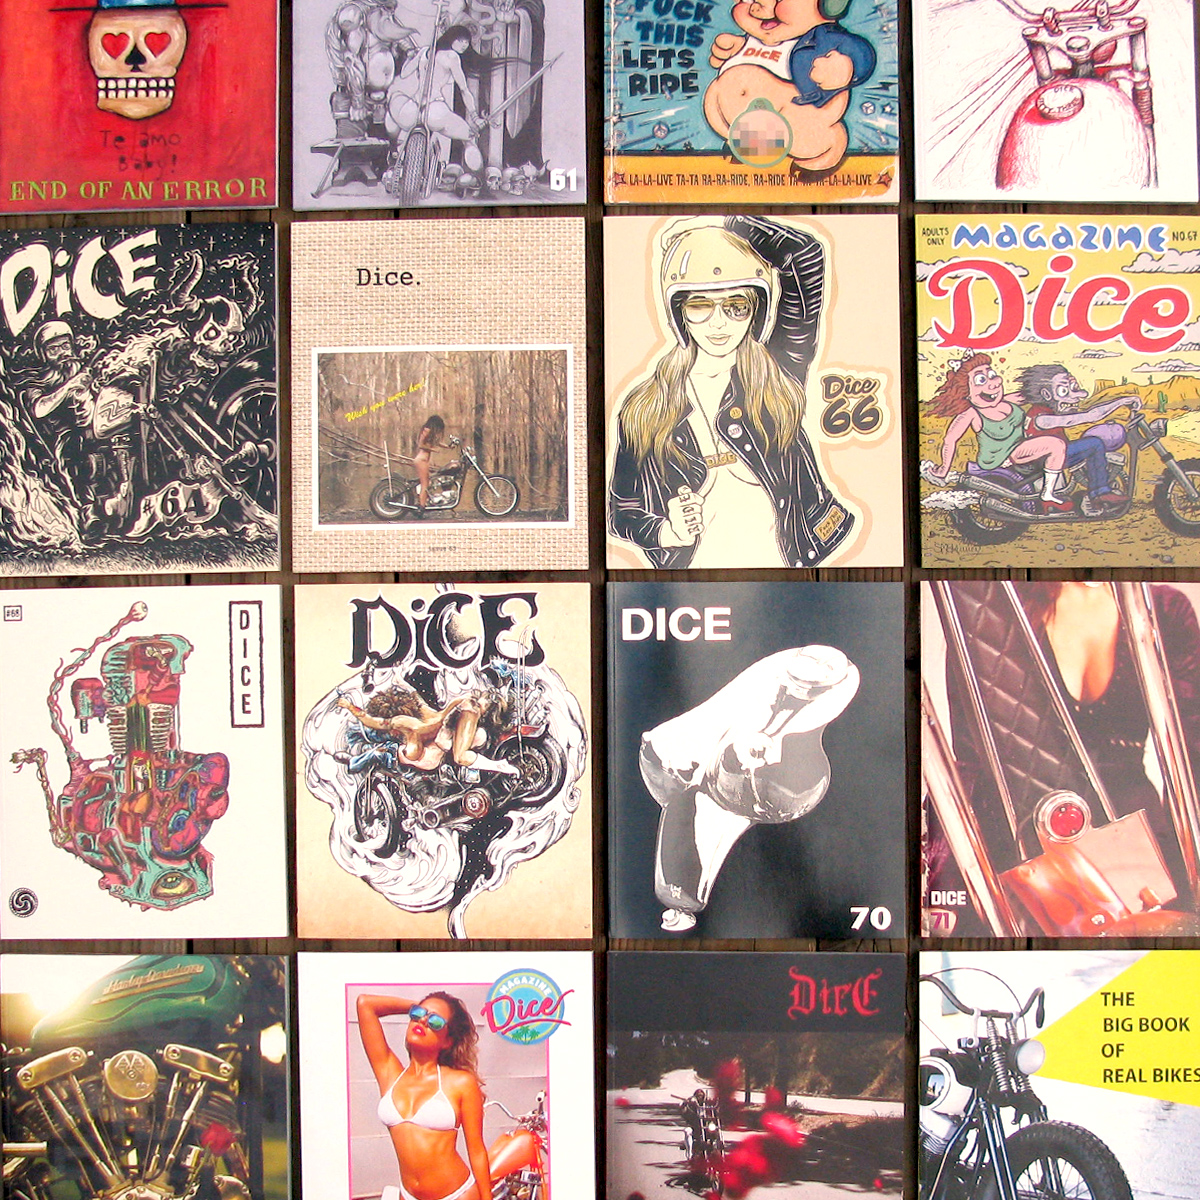 DicE One Year Subscription  Don't miss out on anything for the next year!